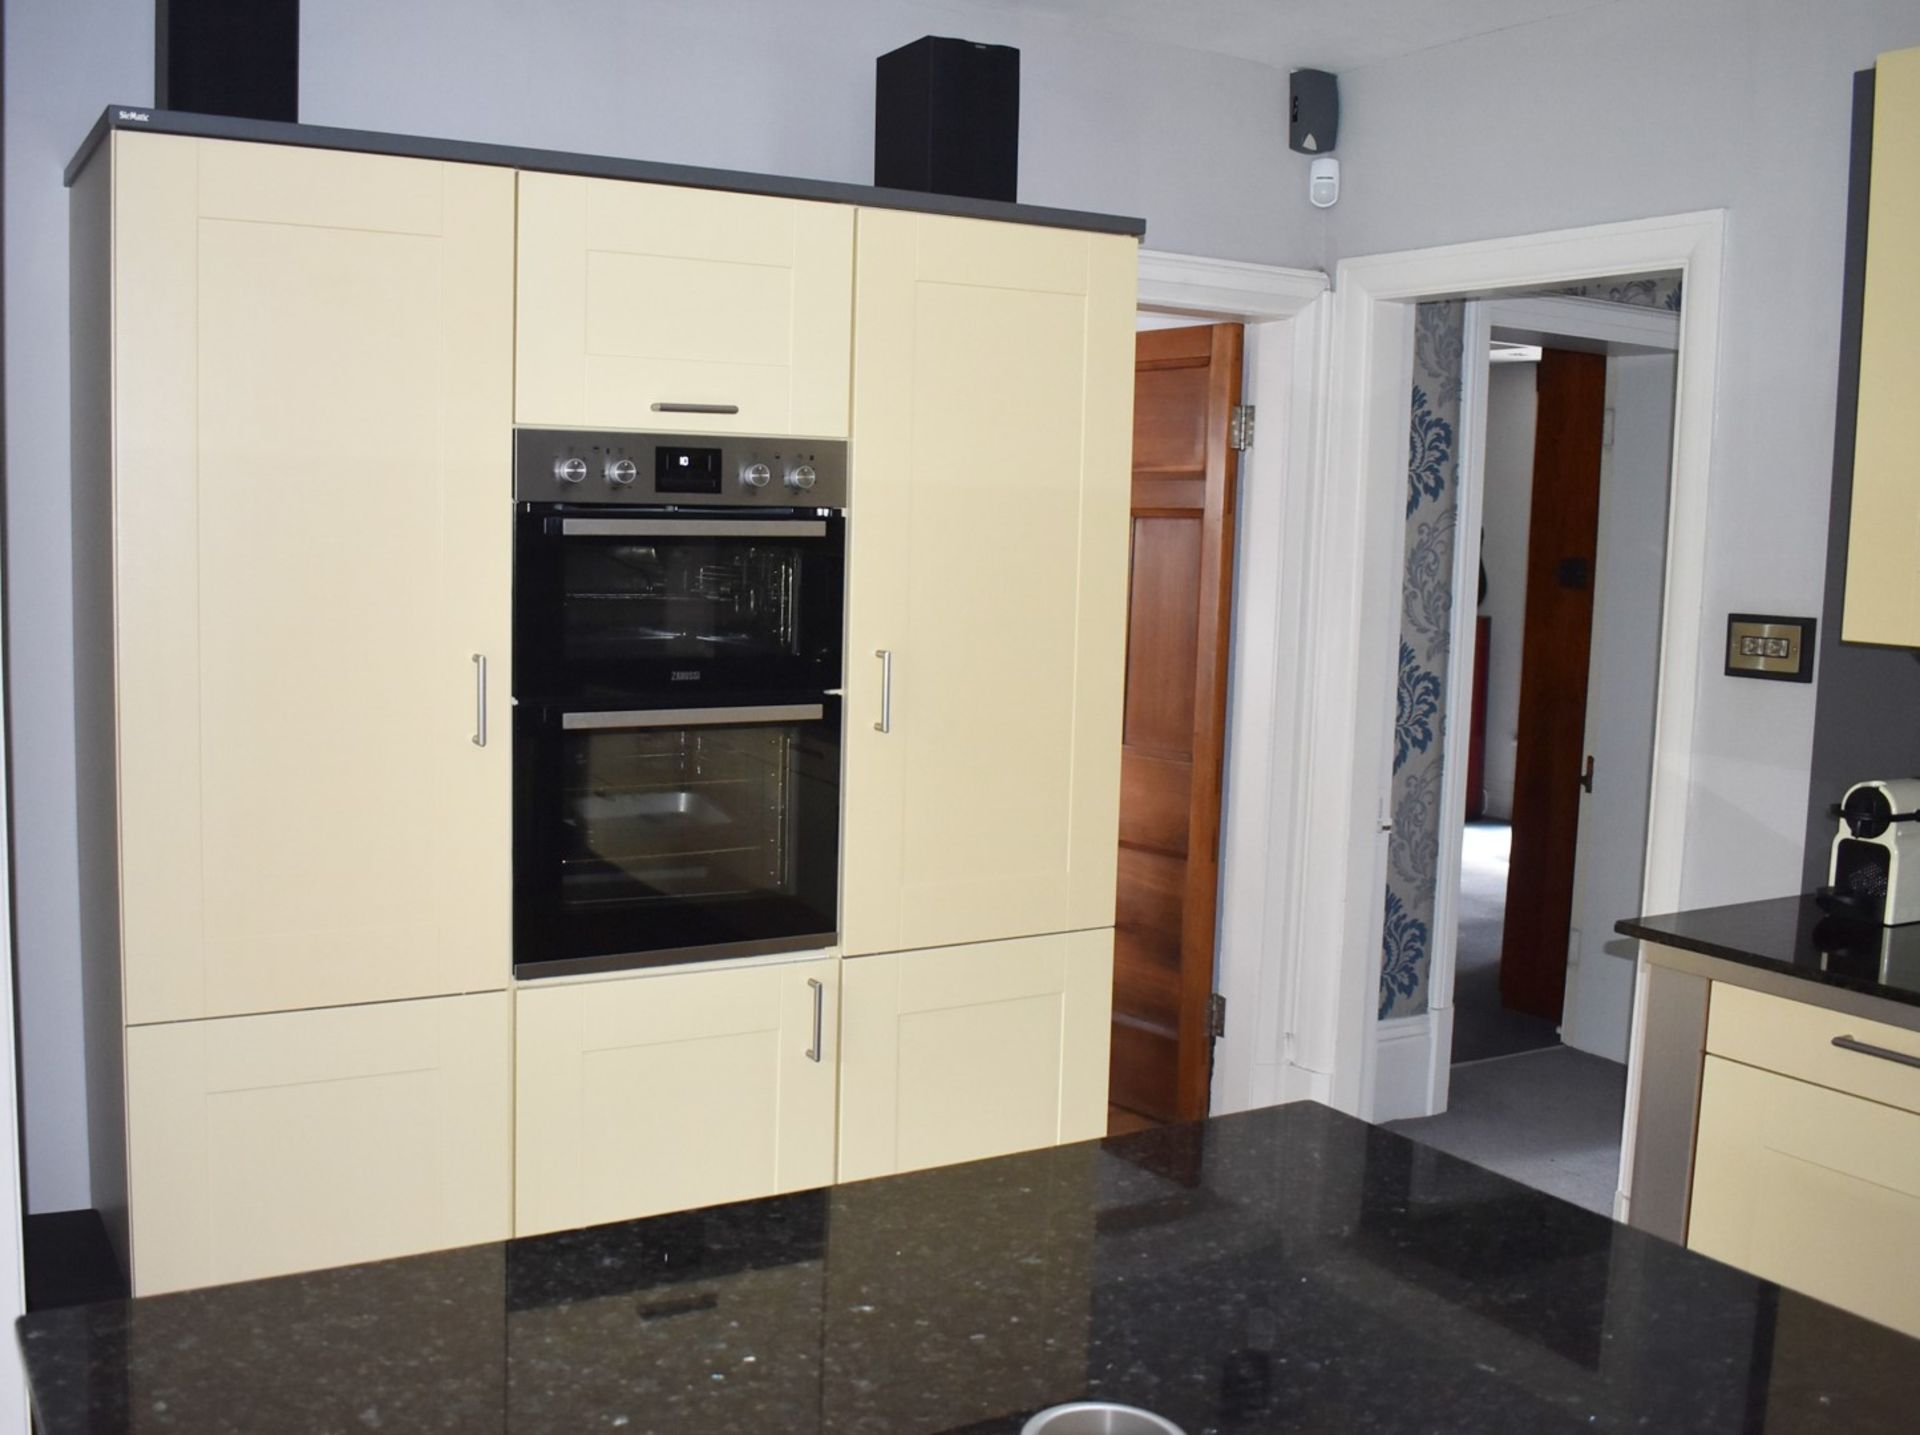 1 x SieMatic Contemporary Fitted Kitchen With Appliances - Features Shaker Style Doors, Central - Image 14 of 96